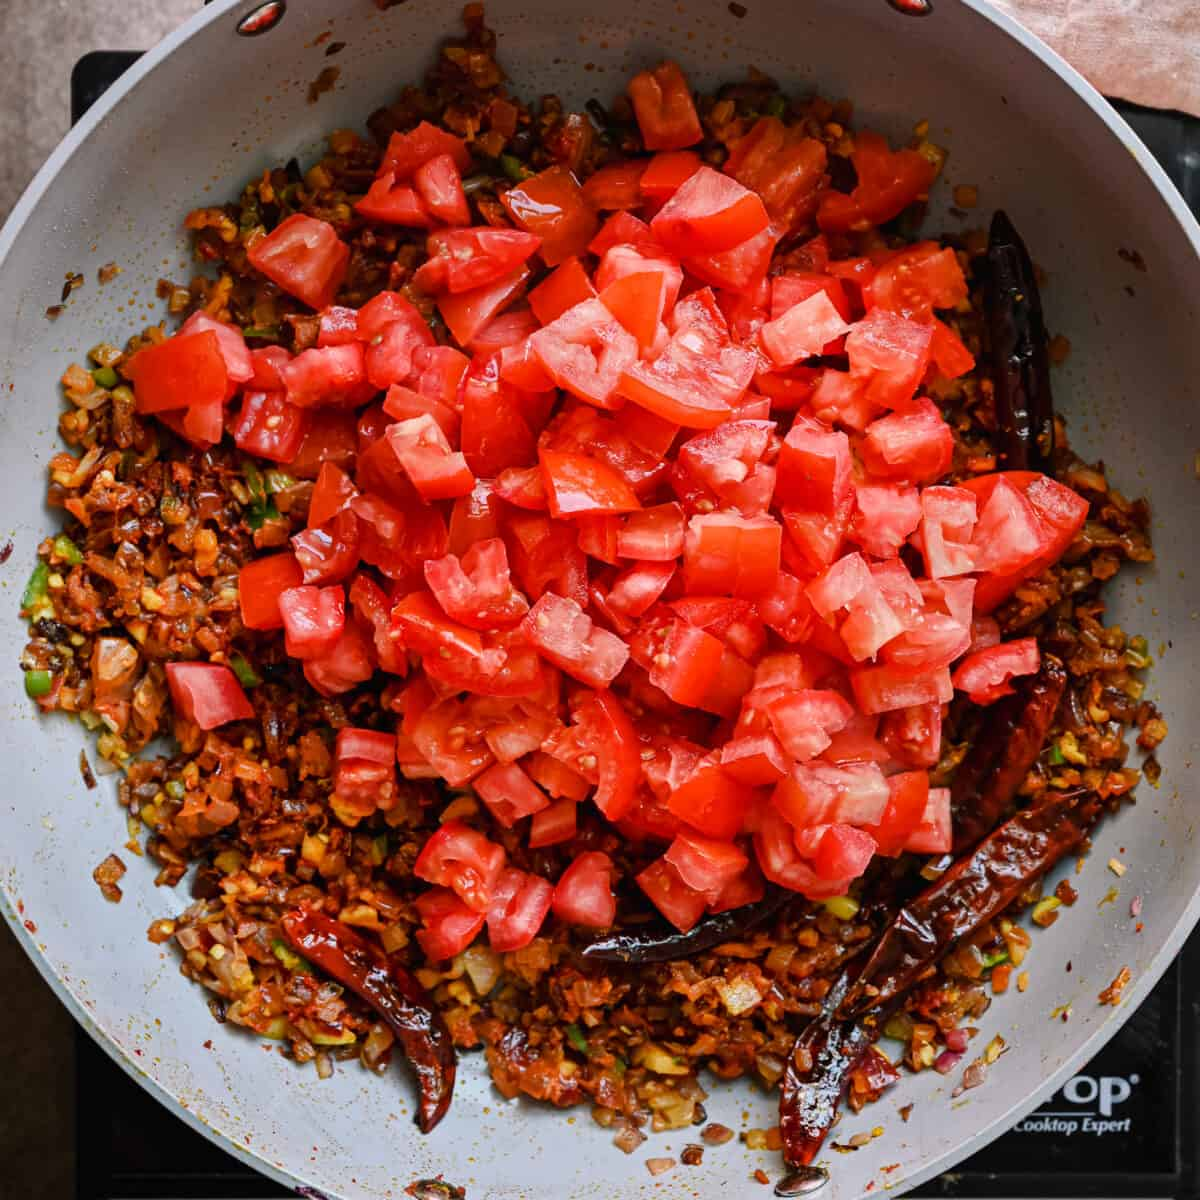 diced tomatoes sitting on top of masala in a saute pan